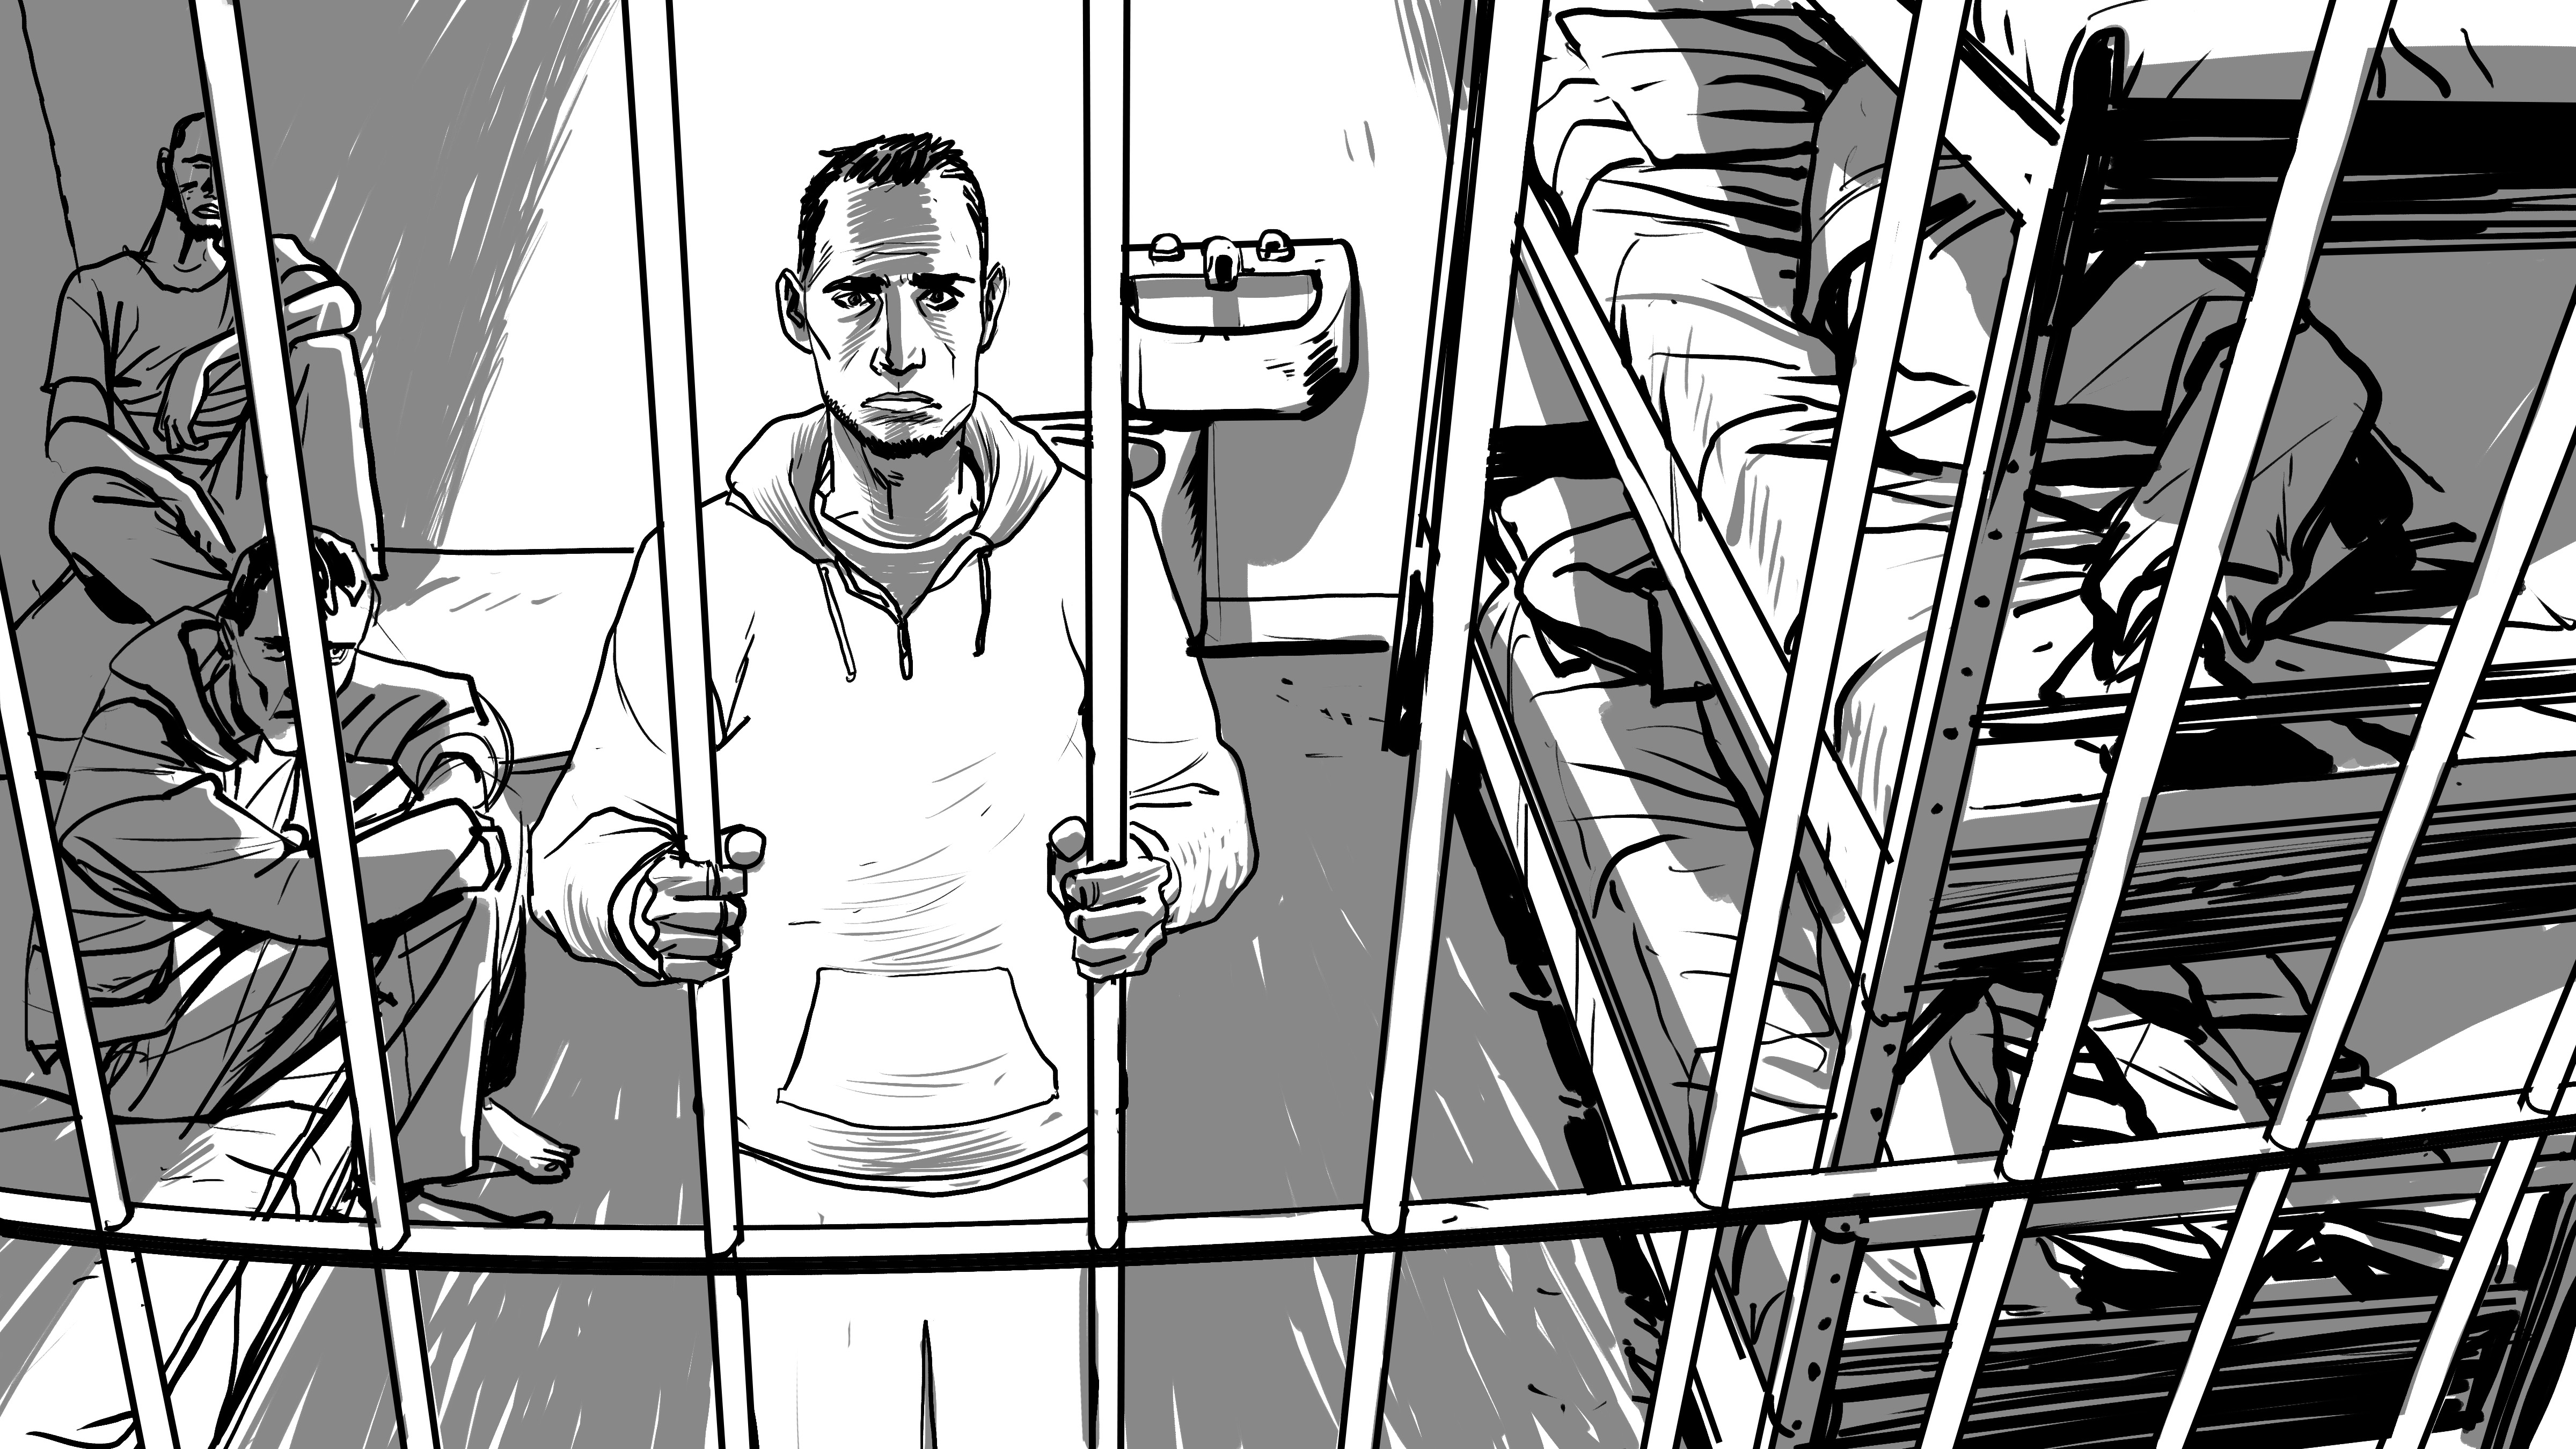 Article 230 of the Tunisian penal code provides for up to three years in prison for same-sex intimacy. (Illustration courtesy of HRW)